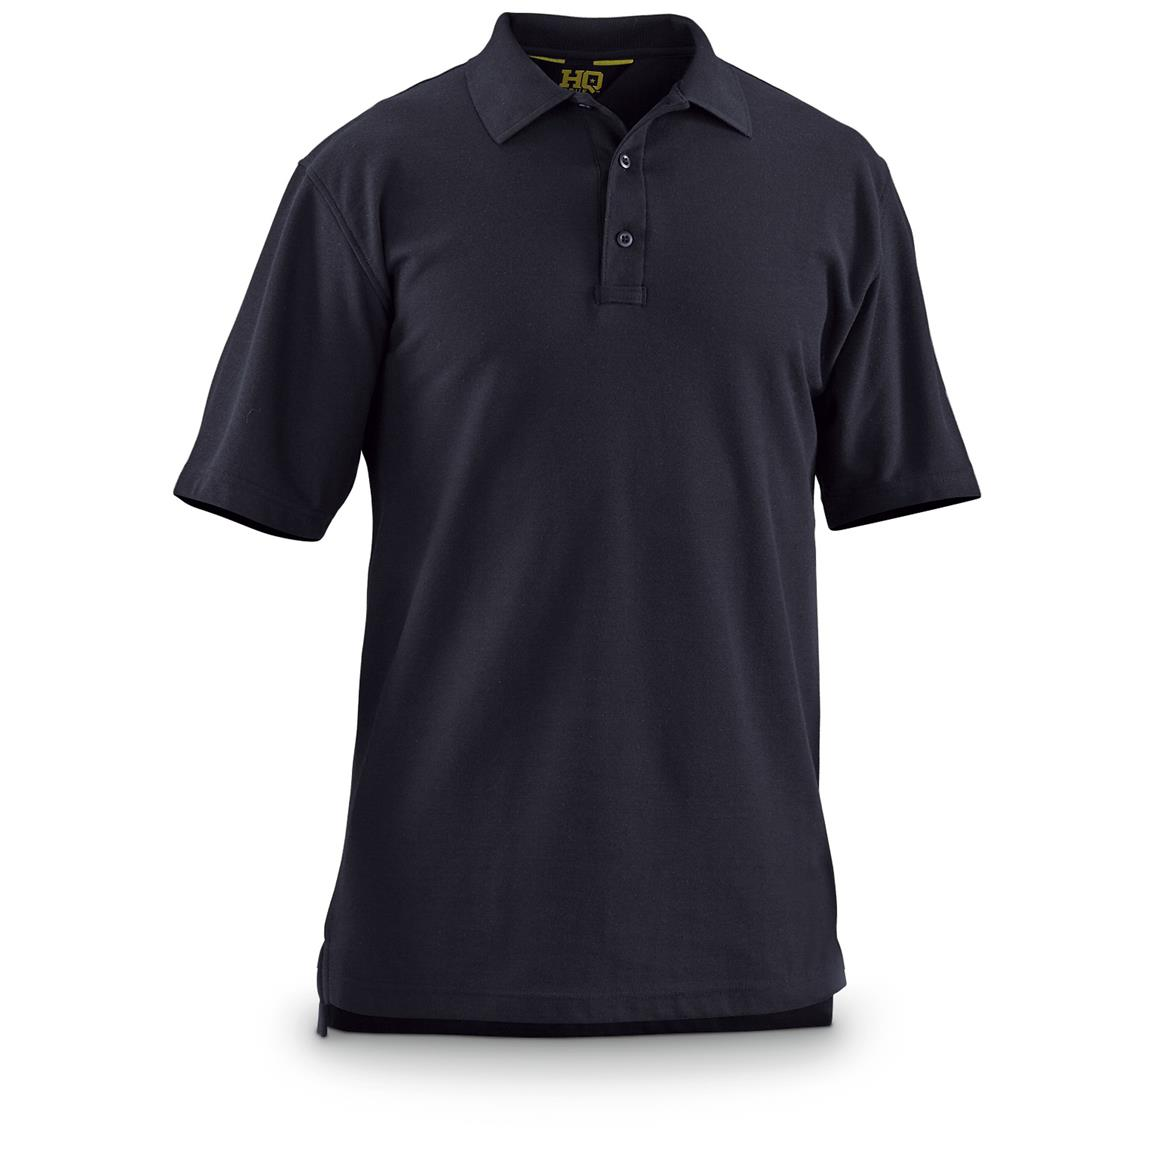 HQ ISSUE Men's Short-Sleeve Tactical Polo Shirt, Navy